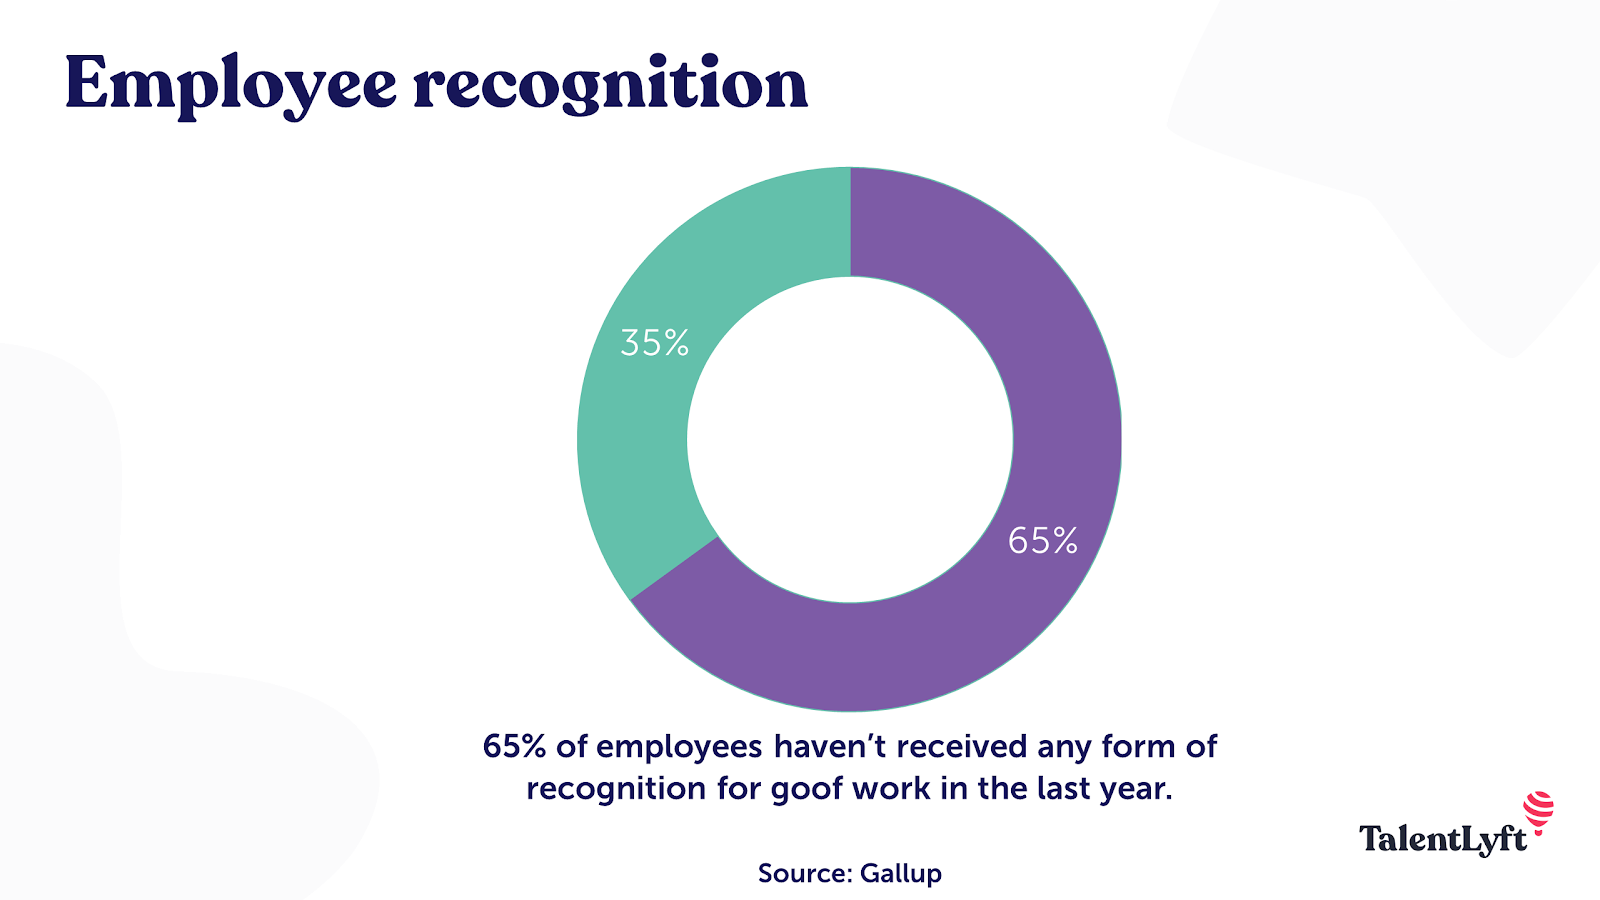 Employee recognition importance